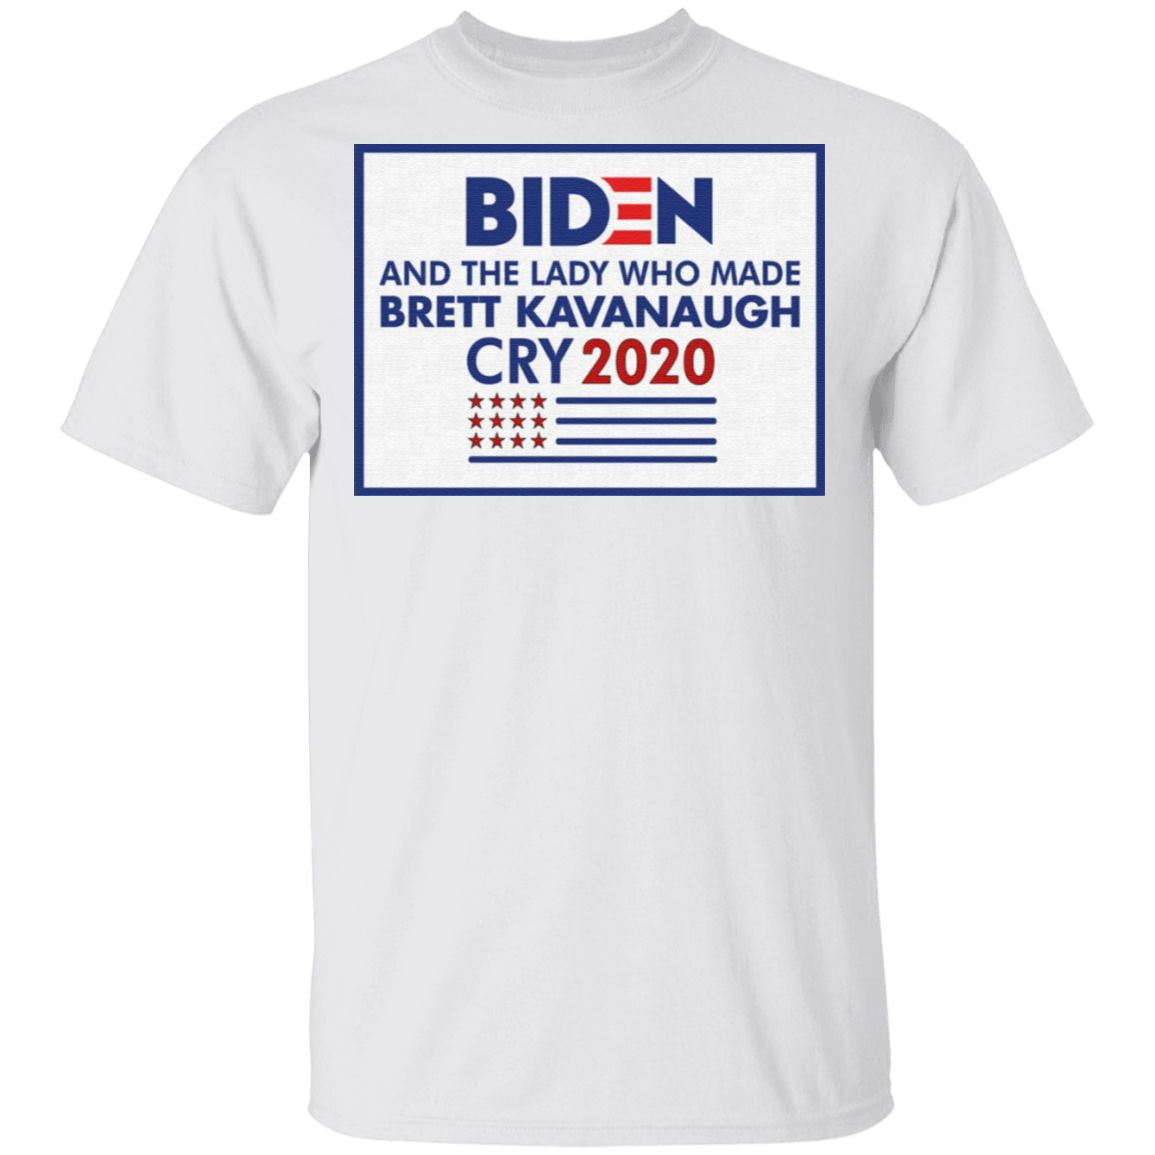 Biden And The Lady Who Made Brett Kavanaugh Cry 2020 T Shirt